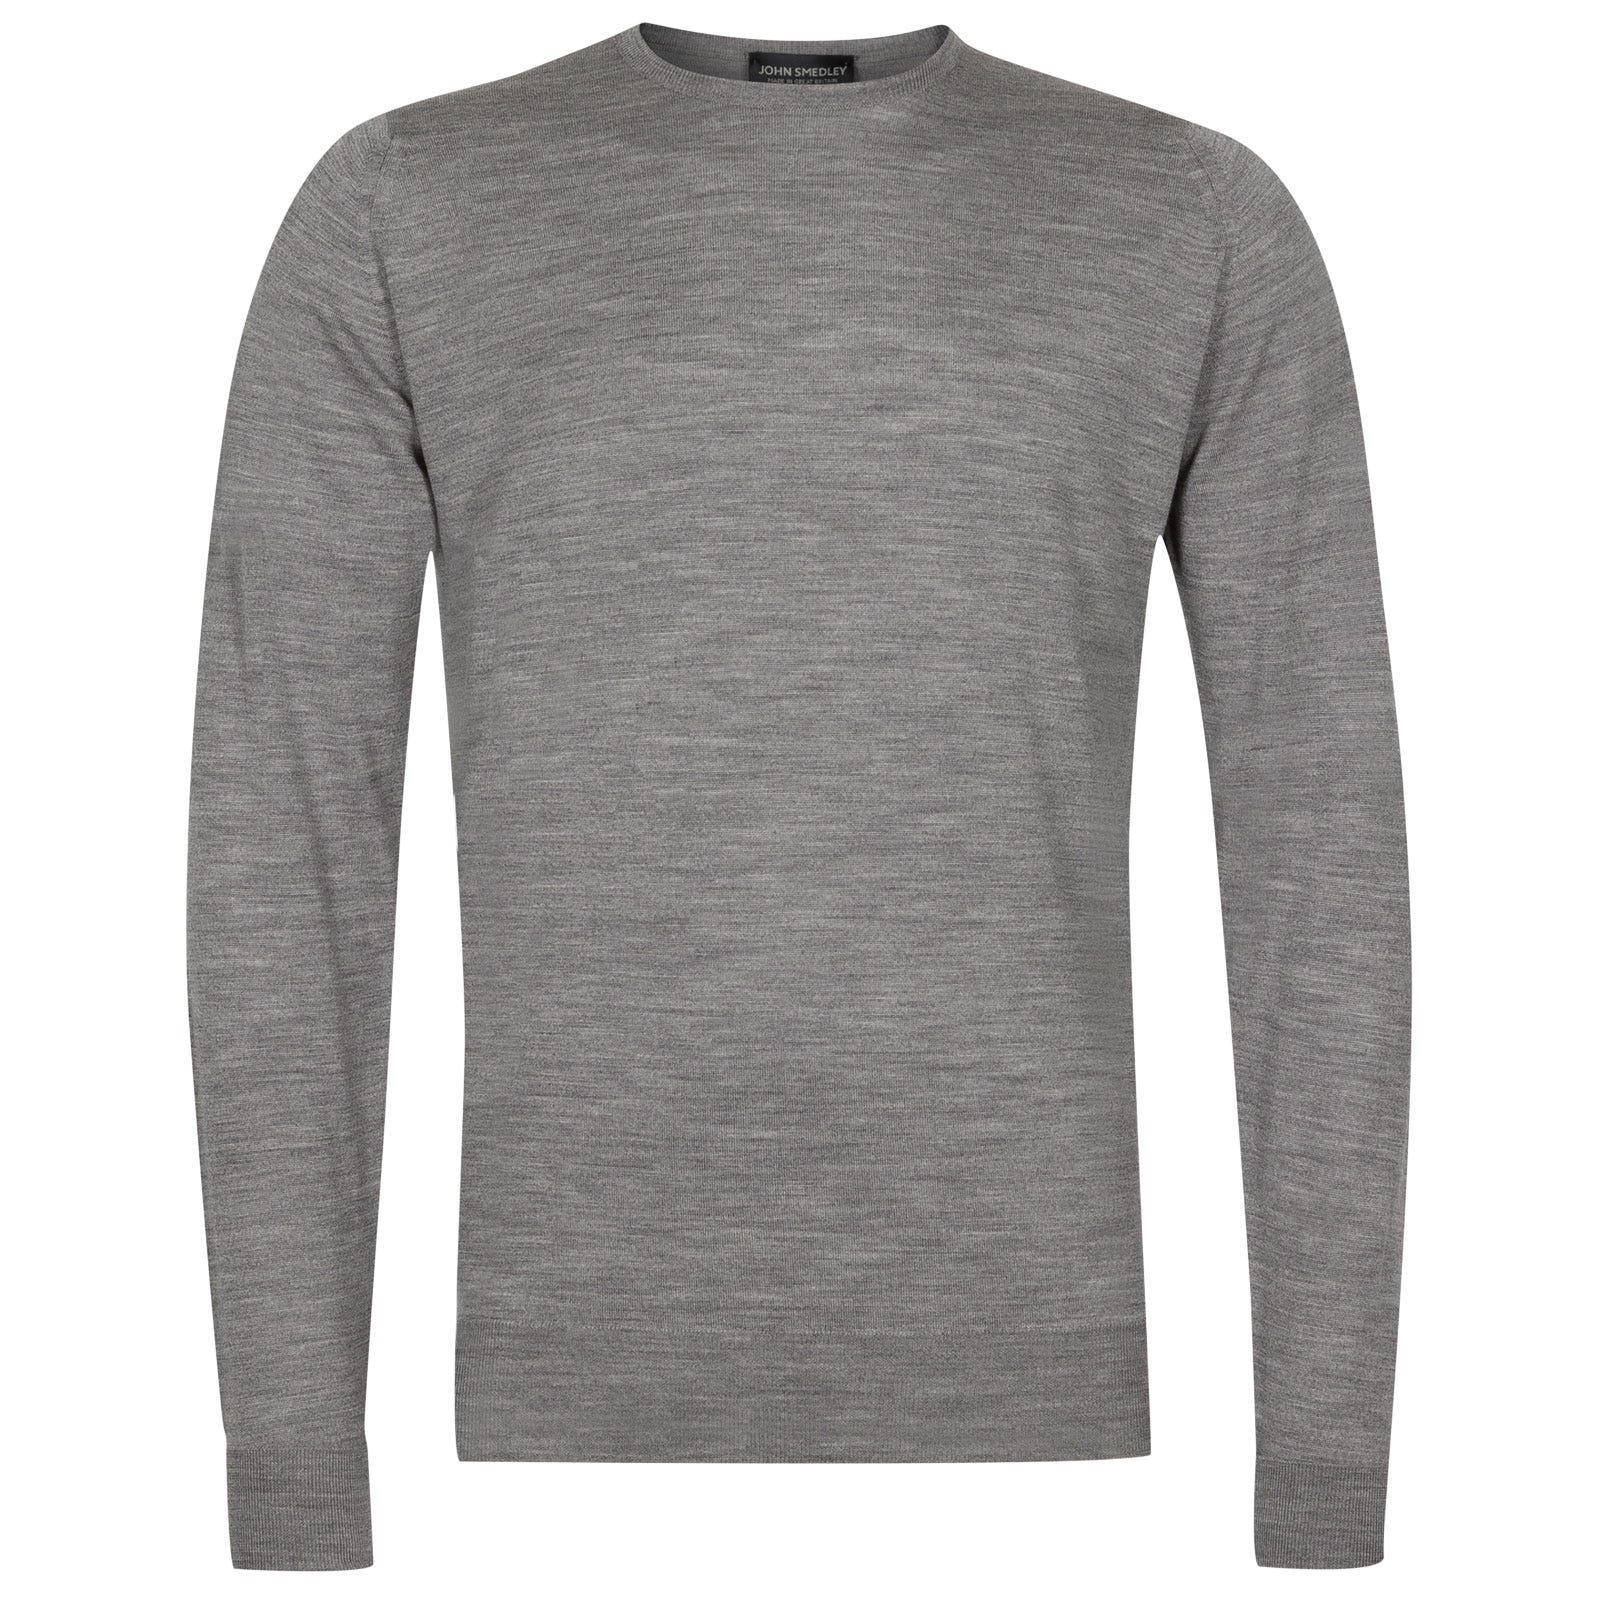 John Smedley marcus Merino Wool Pullover in Silver-XS